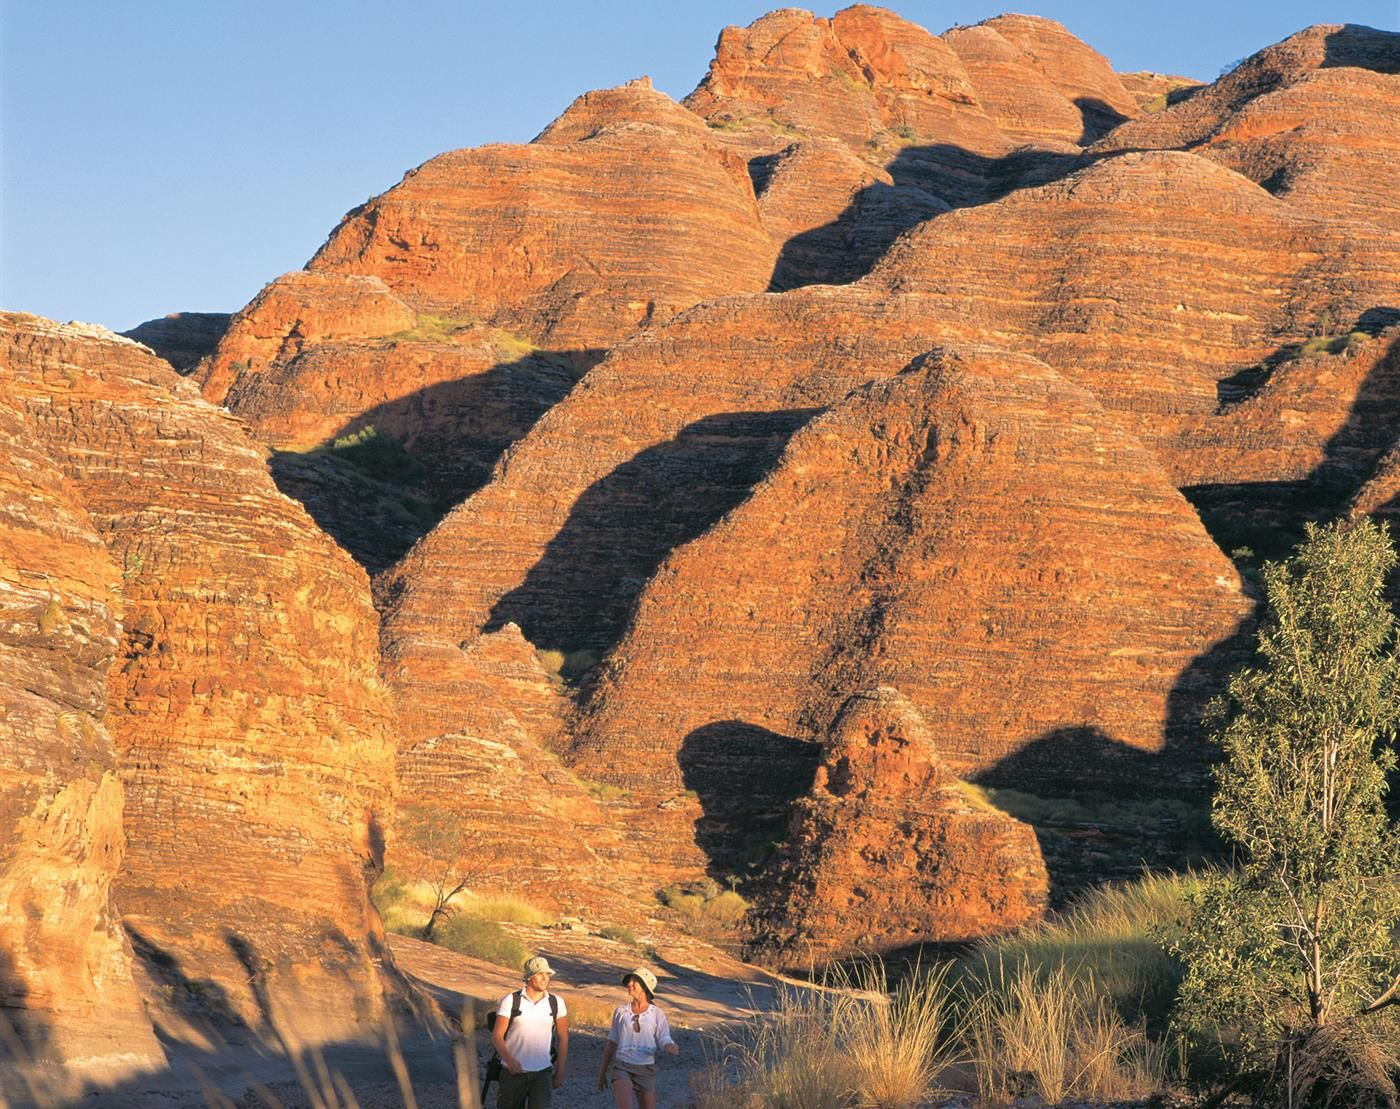 Purnululu National Park www.parkmyvan.com.au #ParkMyVan #Australia #Travel #RoadTrip #Backpacking #VanHire #CaravanHire‬‬‬